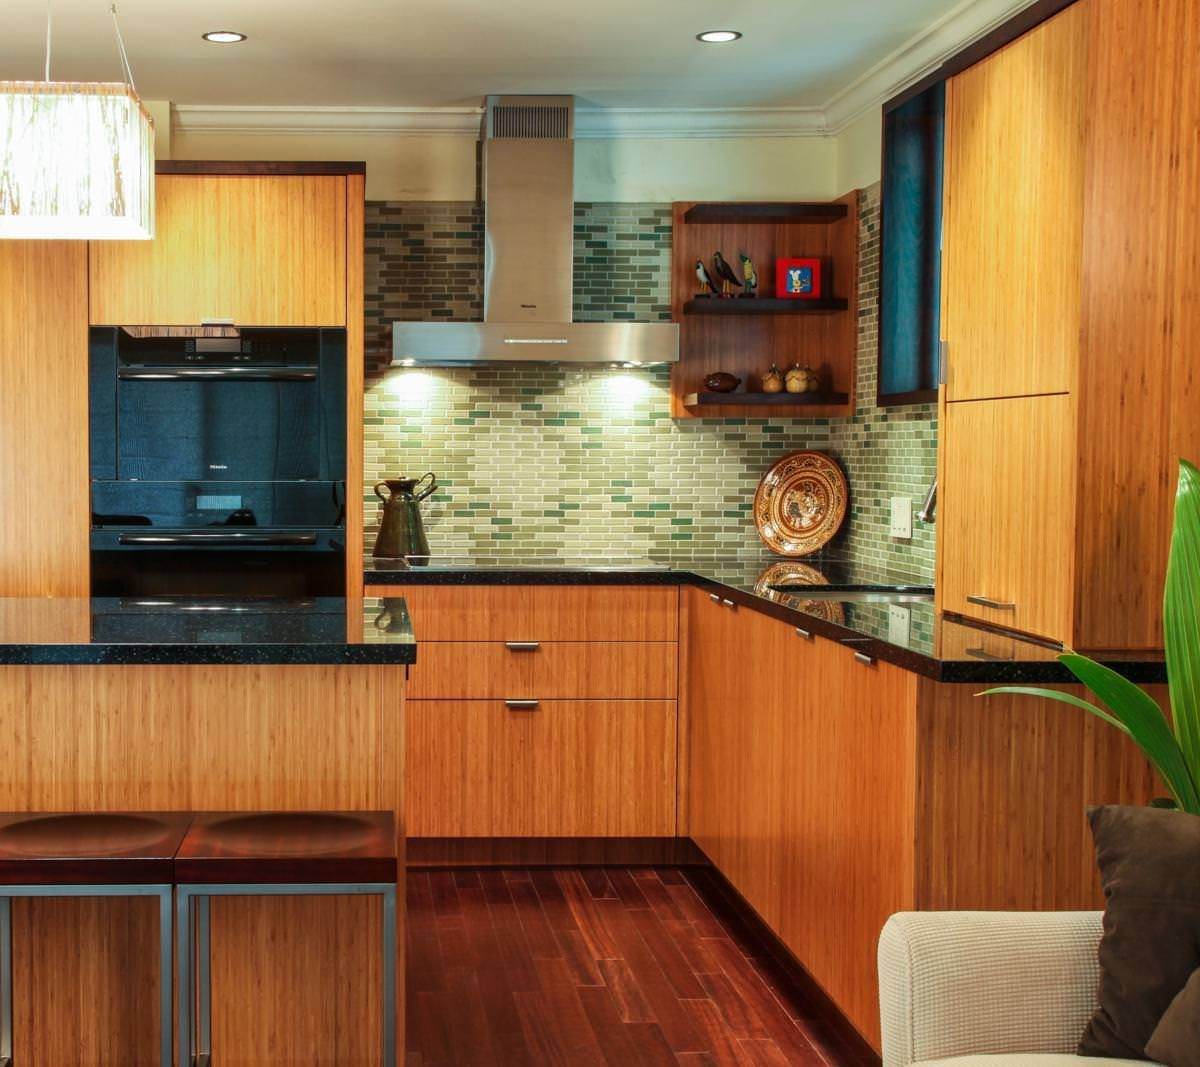 This Image Is About Bamboo Kitchen Cabinets The Value Opinions And Titled Remodeling B Bamboo Kitchen Cabinets Kitchen Cabinets And Flooring Bamboo Cabinets